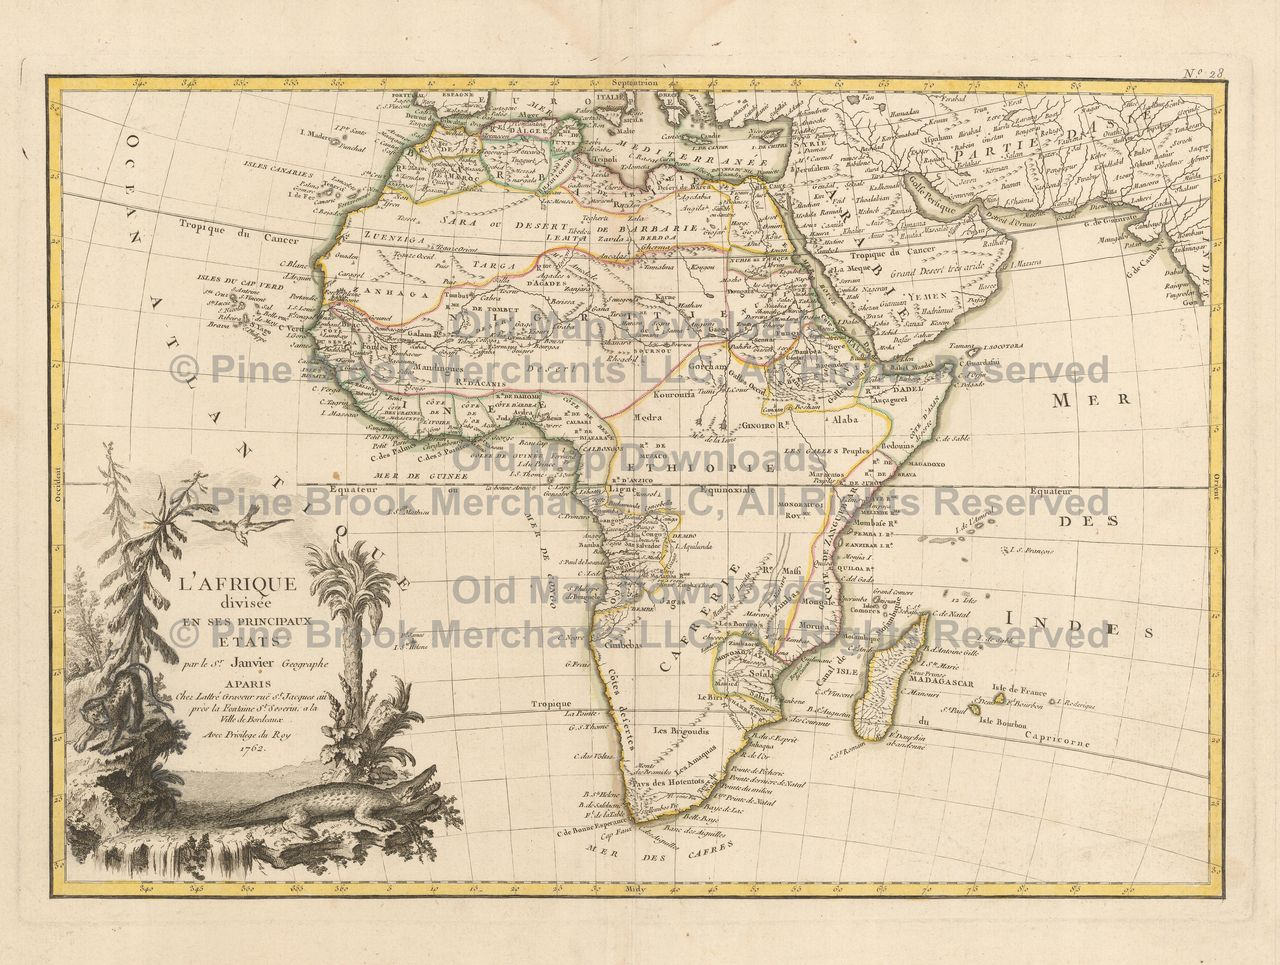 African Continent Old Map Janvier 1762 Digital Image Scan ... on